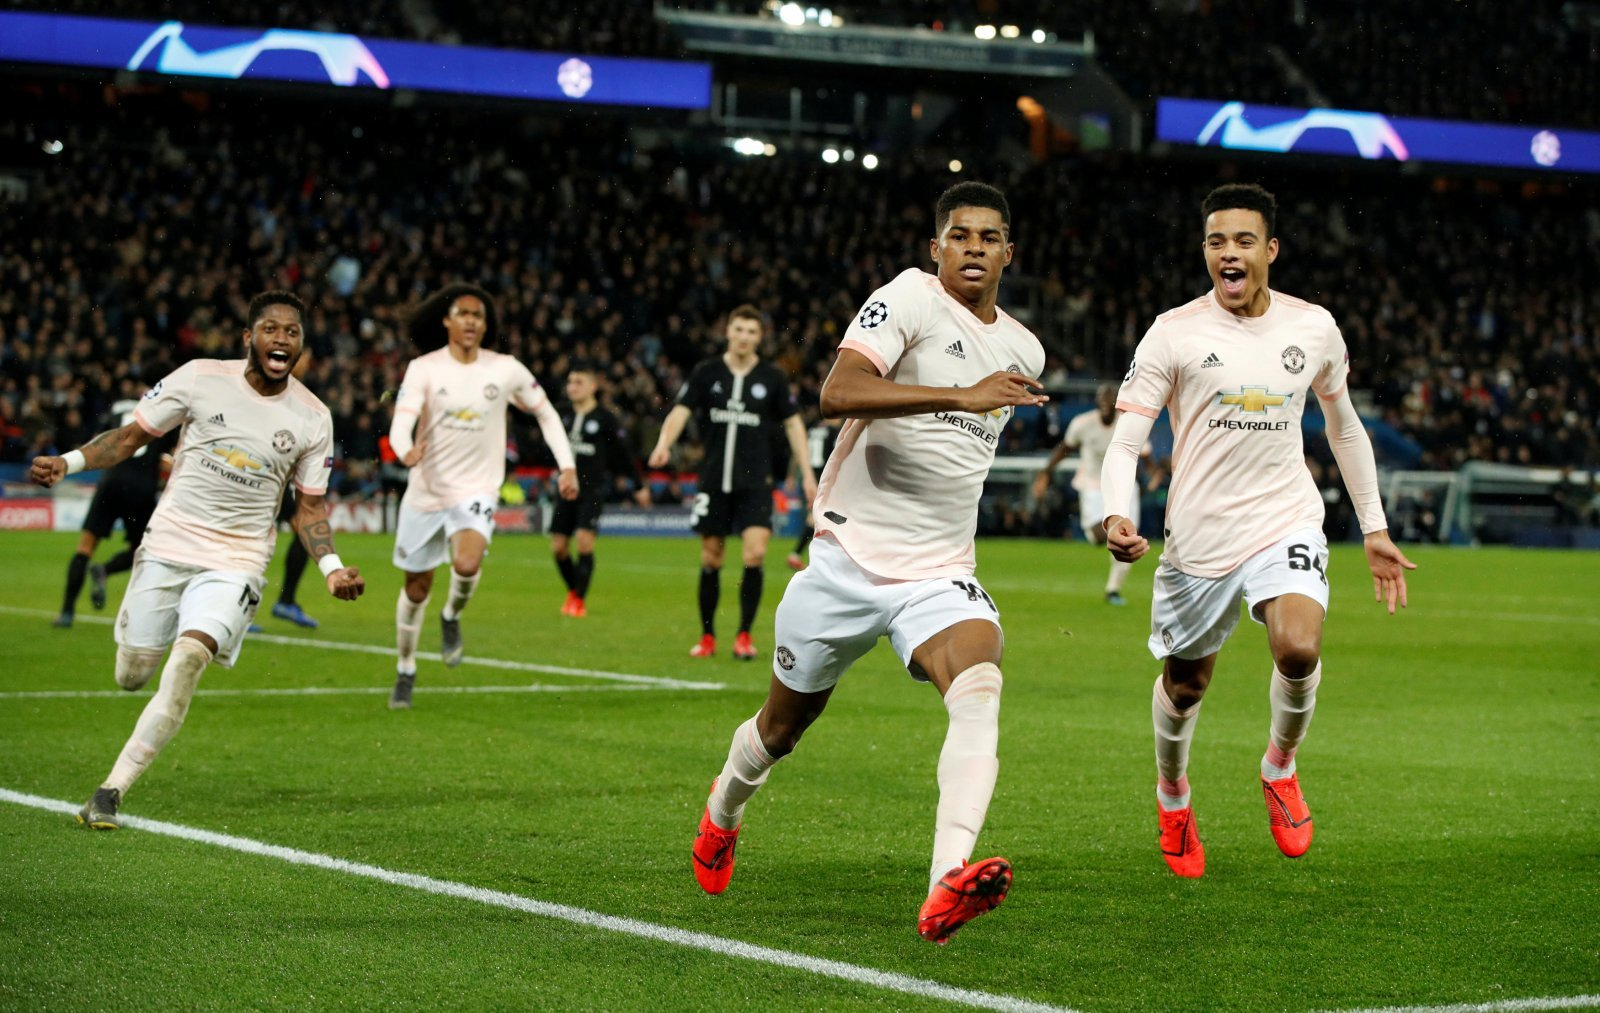 Romance restored: Why neutrals will love Manchester United again